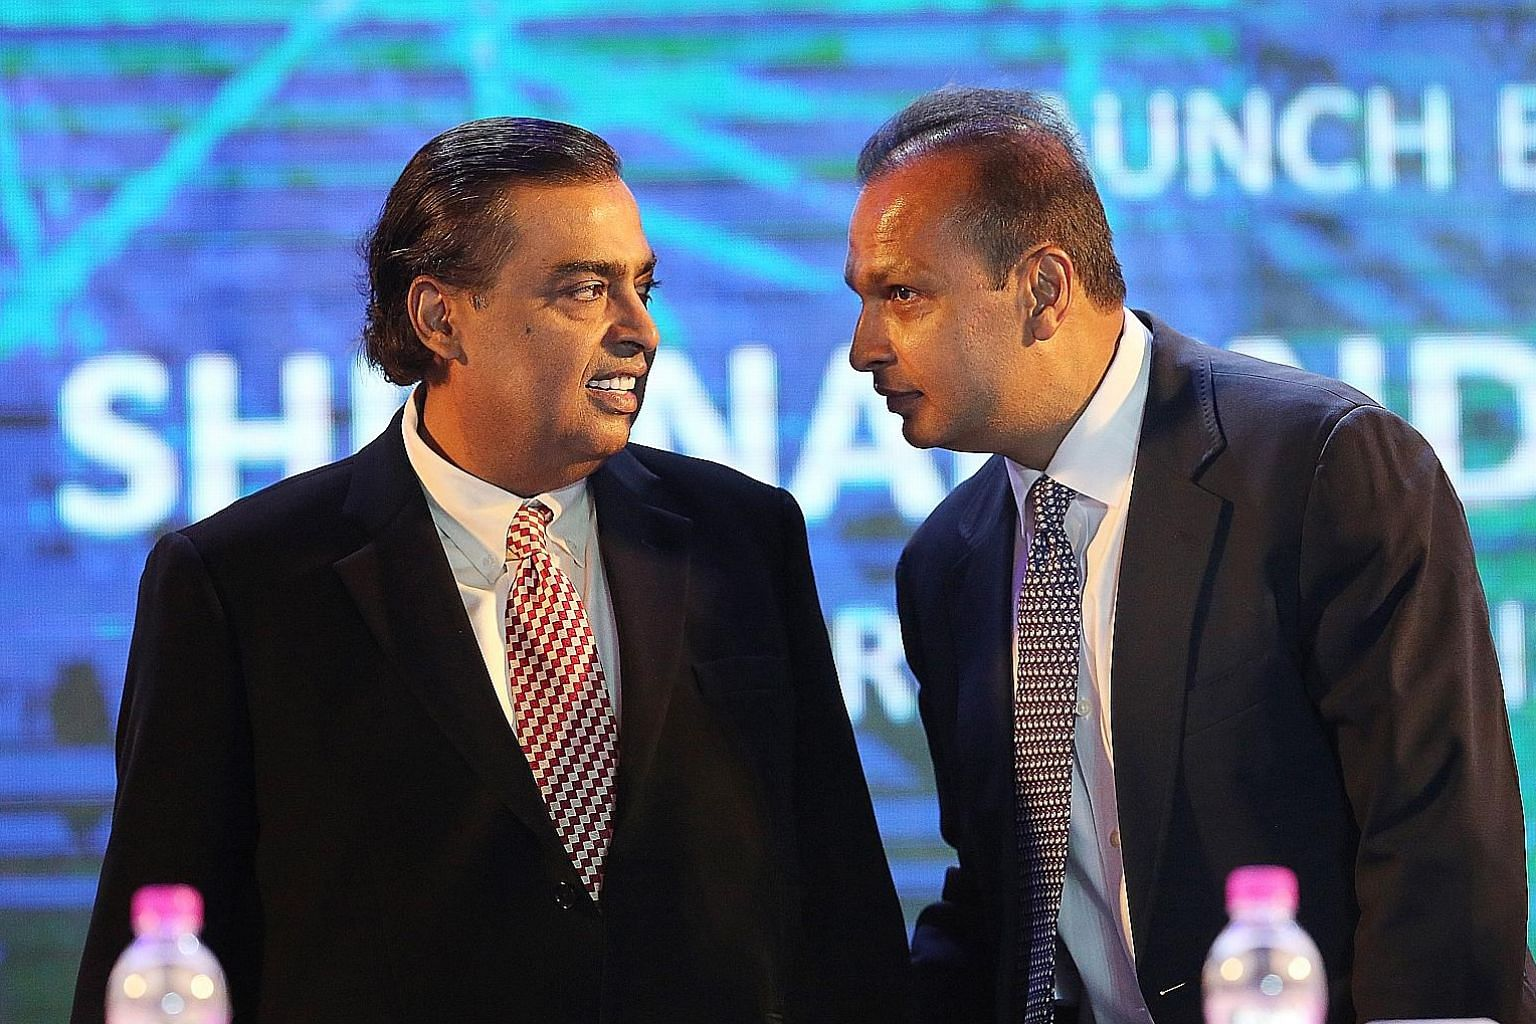 Reliance Industries chairman Mukesh Ambani (left) last week settled a 5.8 billion rupee (S$114 million) debt owed to Sweden's Ericsson by his younger brother Anil over a telecommunications contract that soured partly because Anil's Reliance Communica